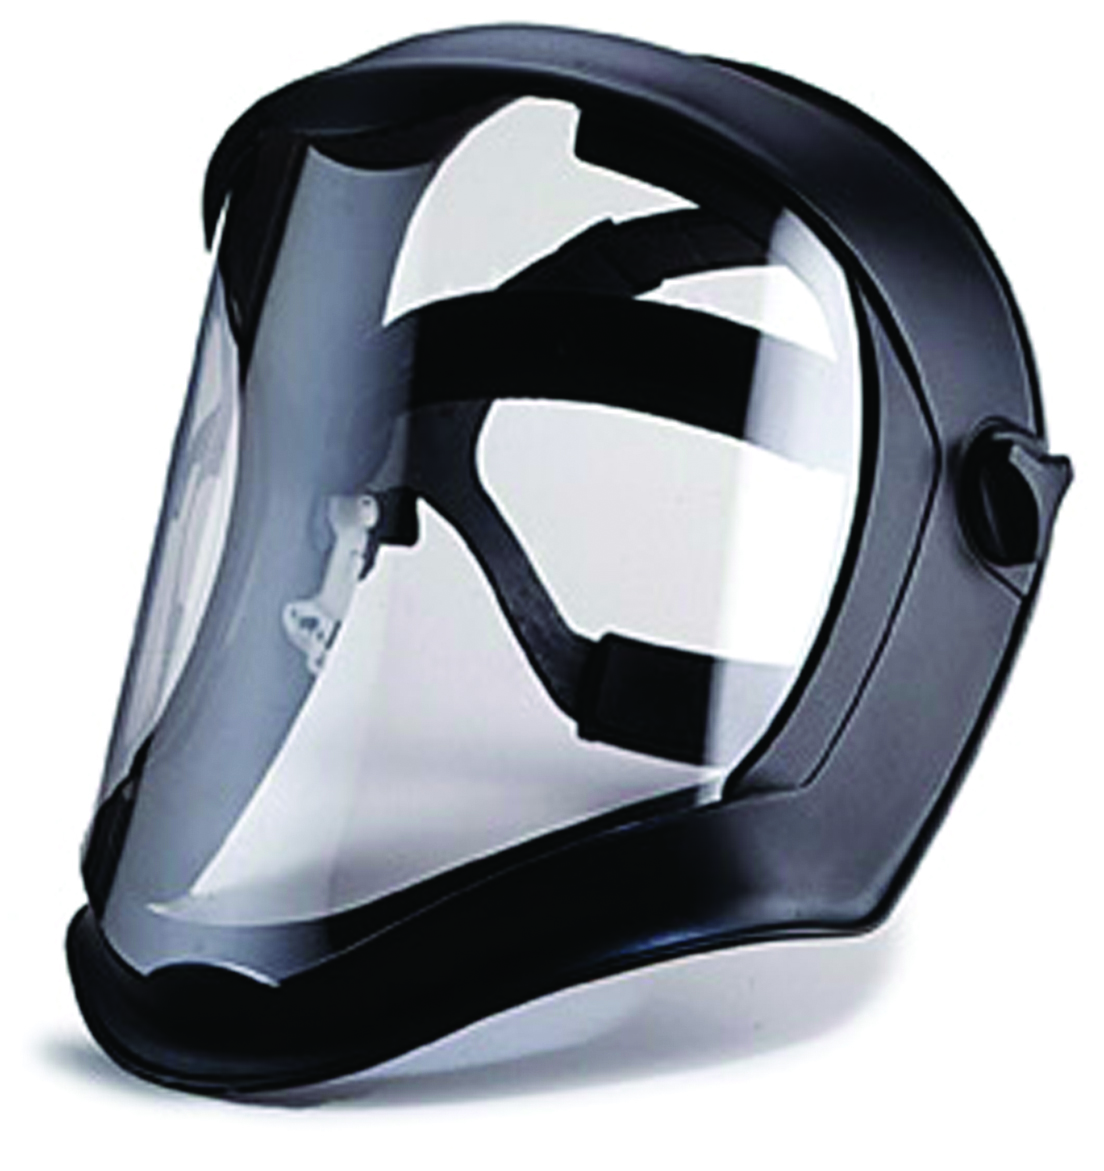 S8560 - Bionic® Faceshield and Replacement Visors-Replacement Visors-Shade 3.0, Uncoated----UOM: 1/EA